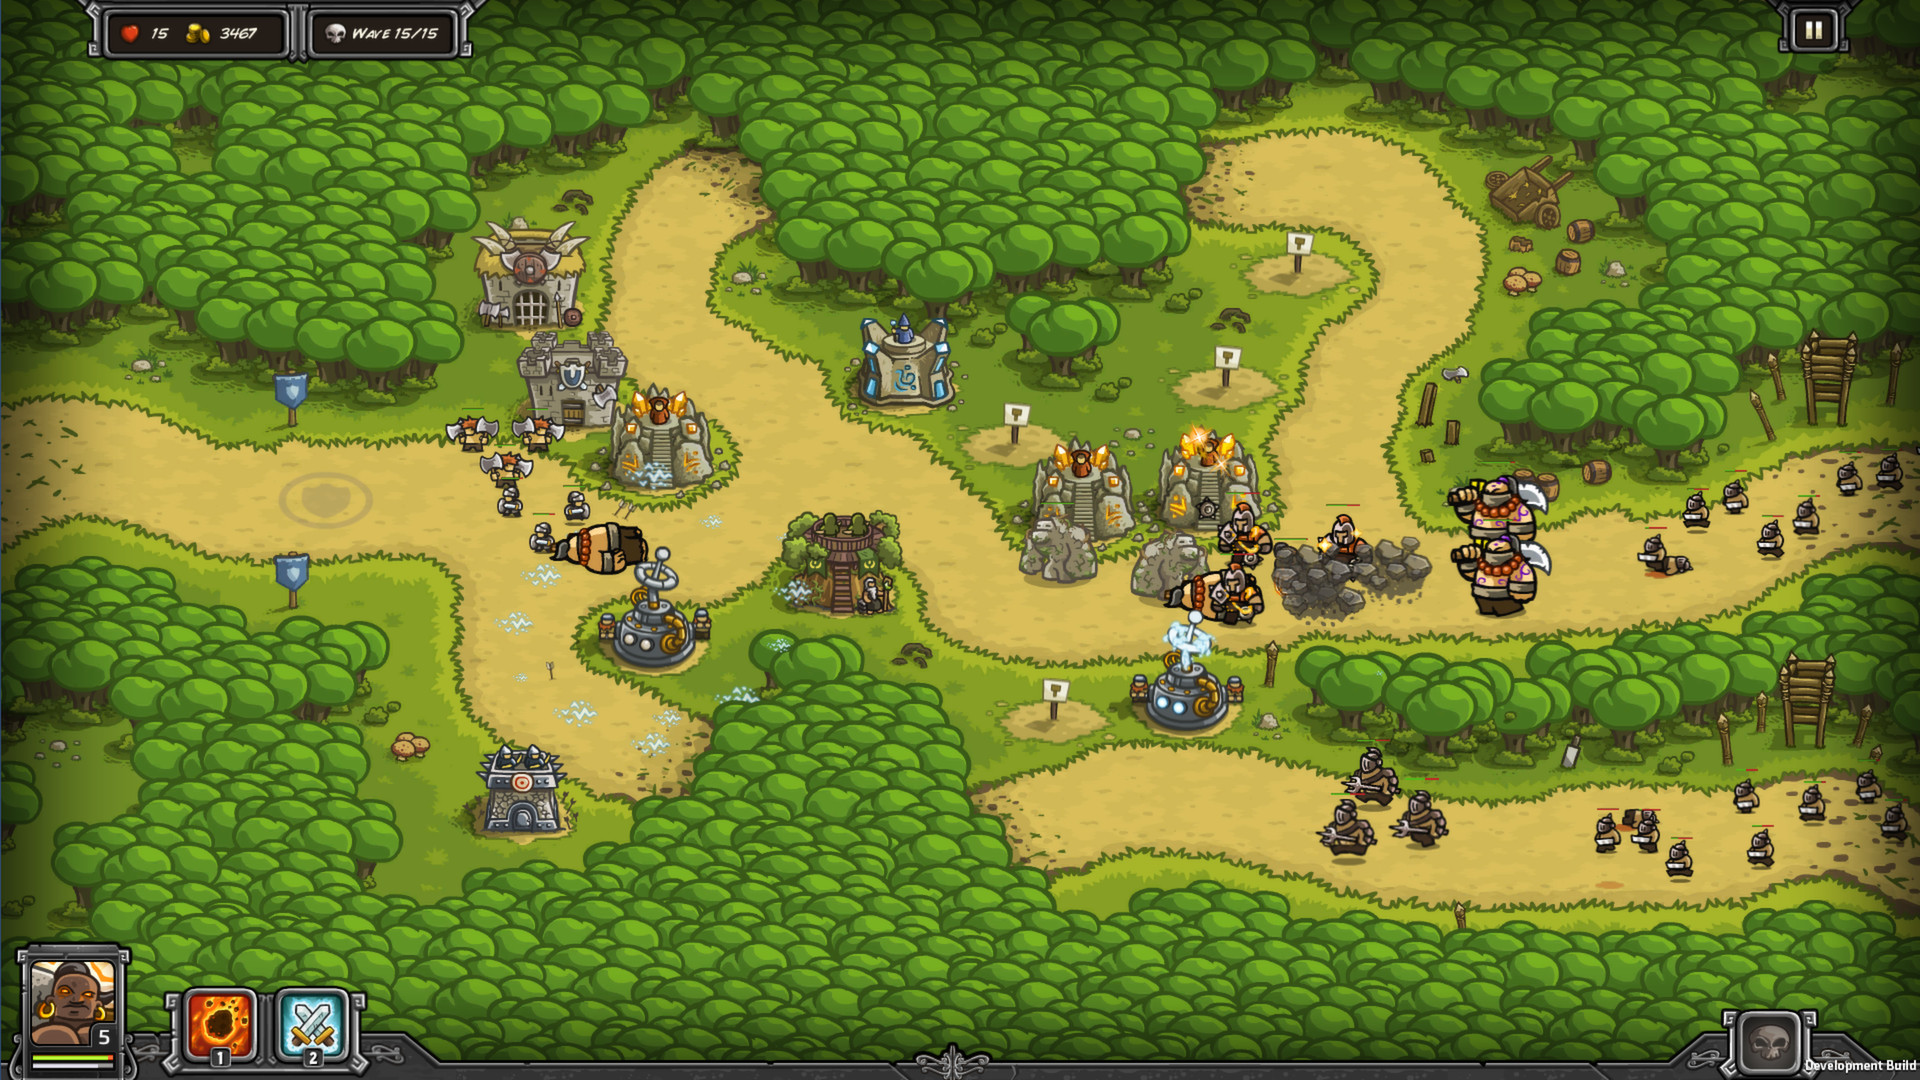 Kingdom Rush (Steam Key)